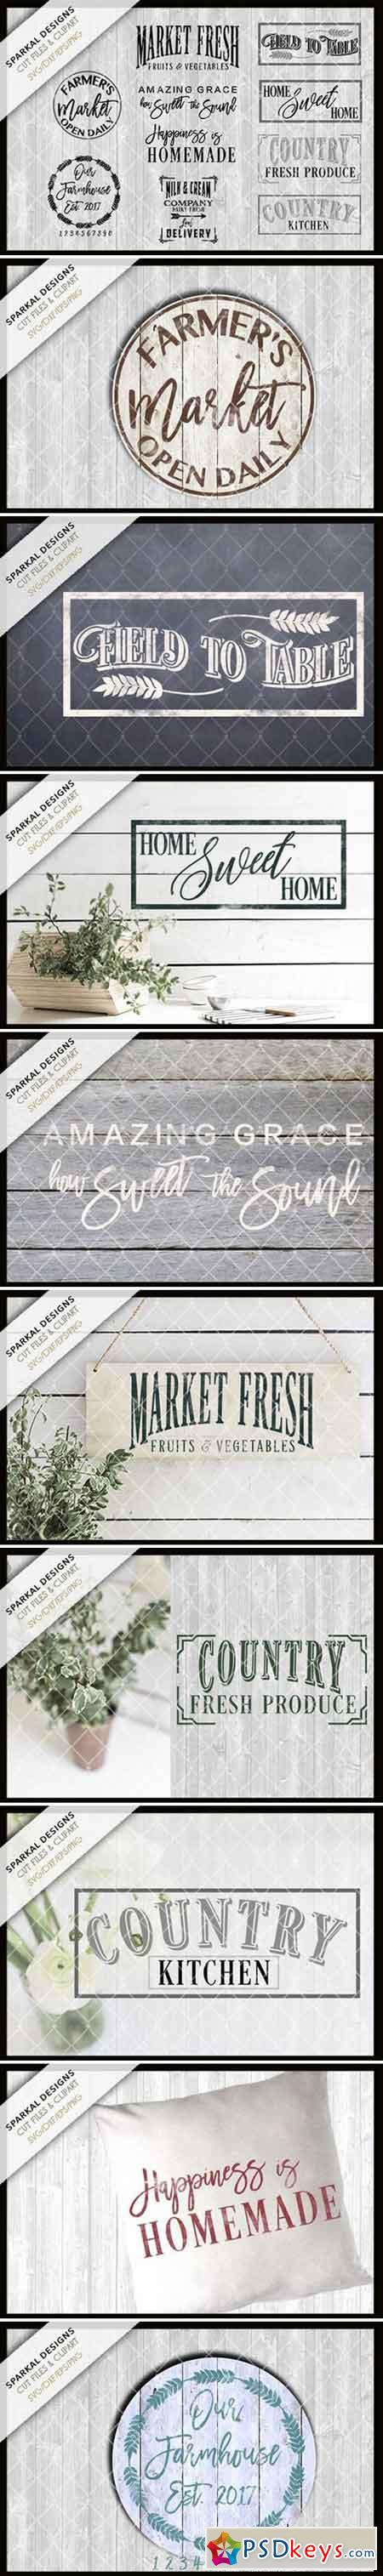 Farmhouse Bundle Sale ~ SVG Files 1730387 » Free Download